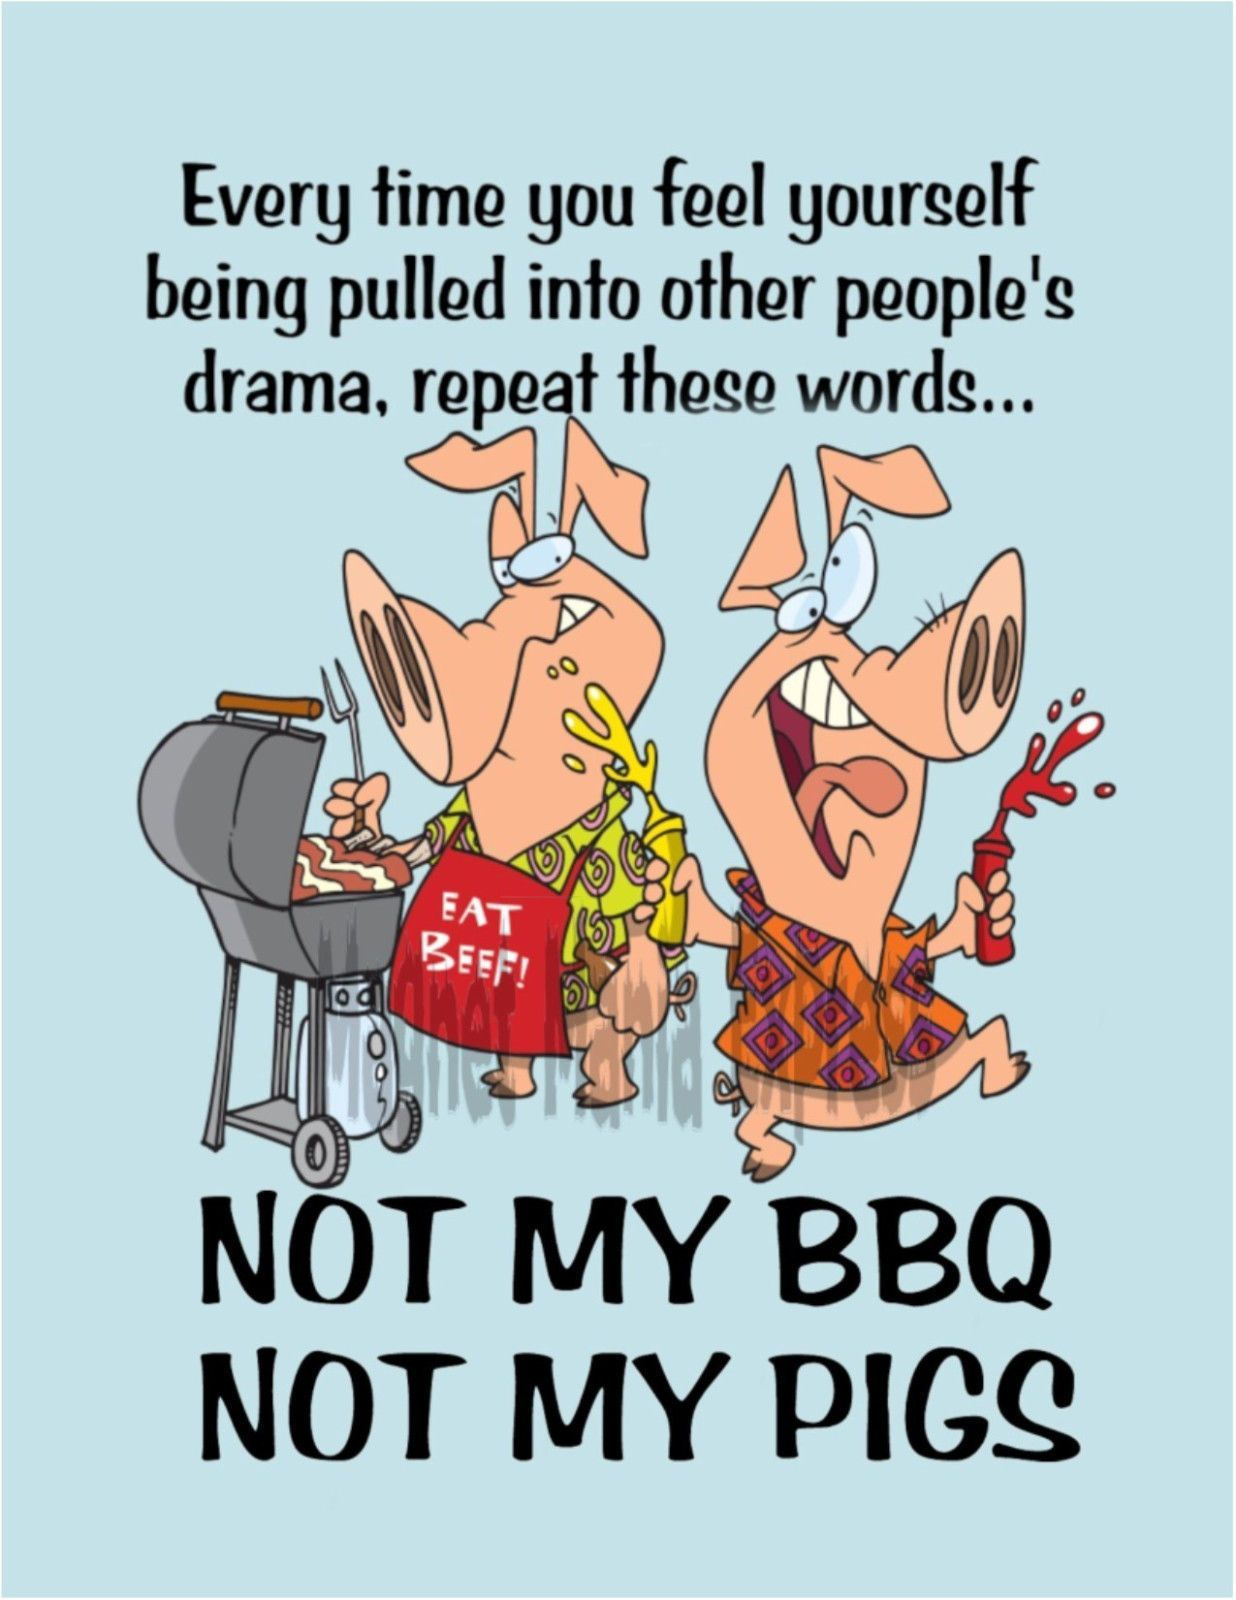 Metal Refrigerator Magnet Pulled Into Drama Not Bbq Pigs Family Friend Humor Friends Funny Crazy Quotes Bbq Humor